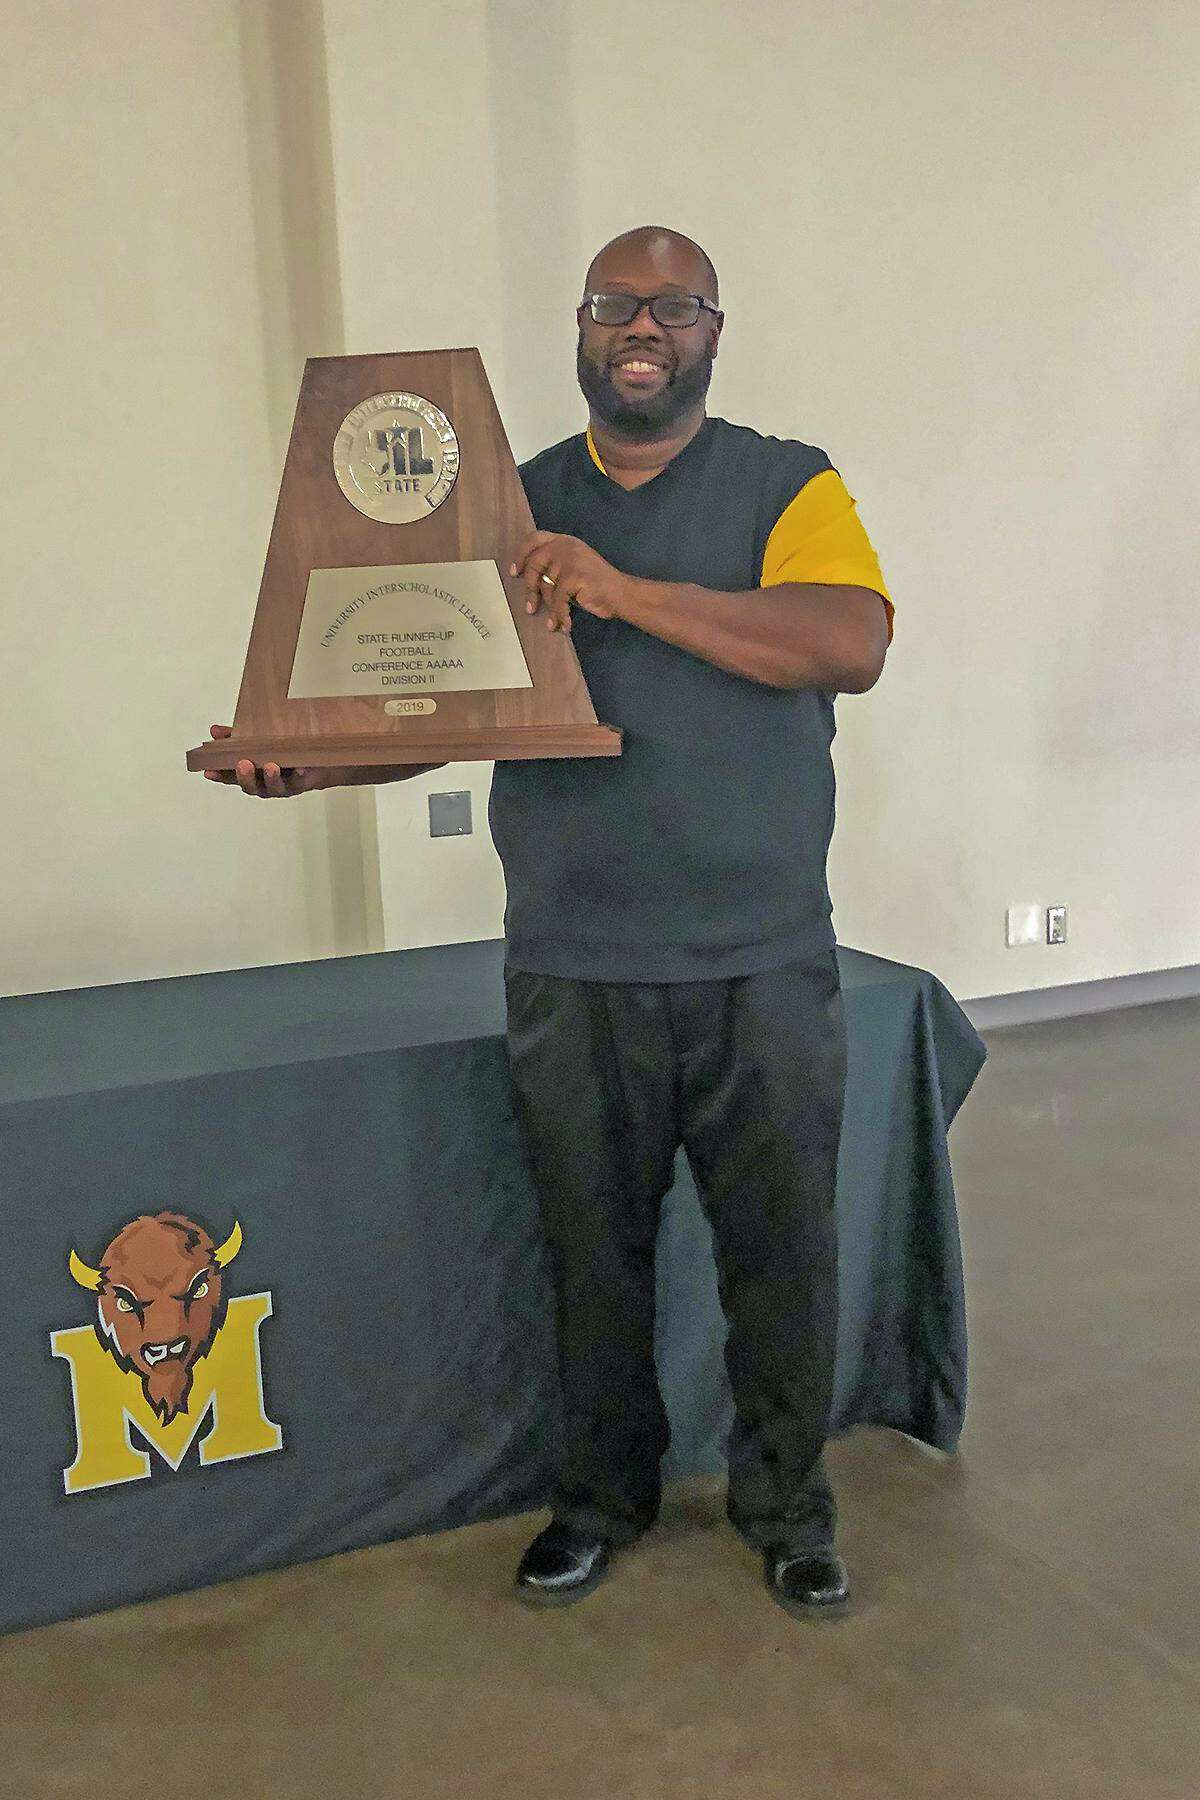 Cypress Springs High School named former Fort Bend Marshall assistant head coach and offensive coordinator Oji Fagan its new head football coach and campus athletic coordinator, Cy-Fair Independent School District announced in a news release Friday, Feb. 5.